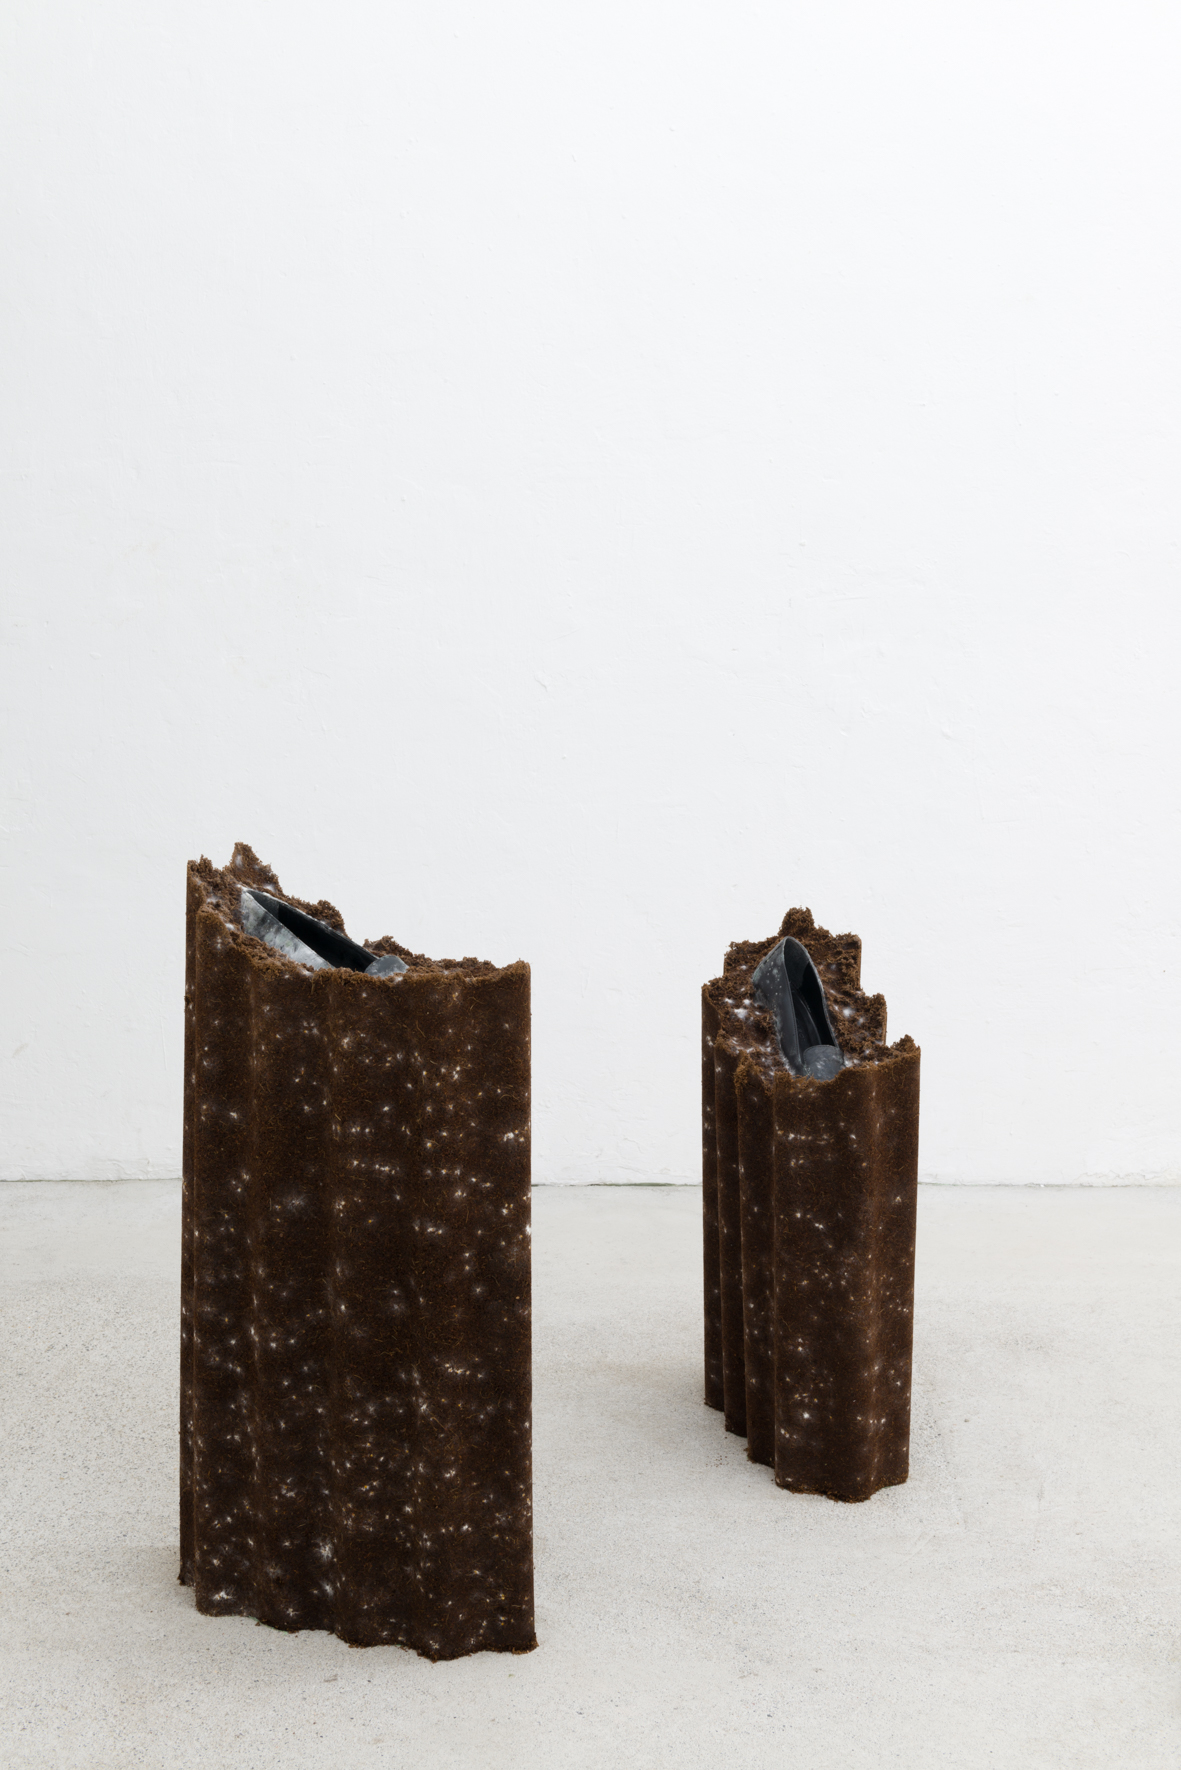 Angelika Loderer: Animate, 2020; coconut substrate, mycelium, leather shoes